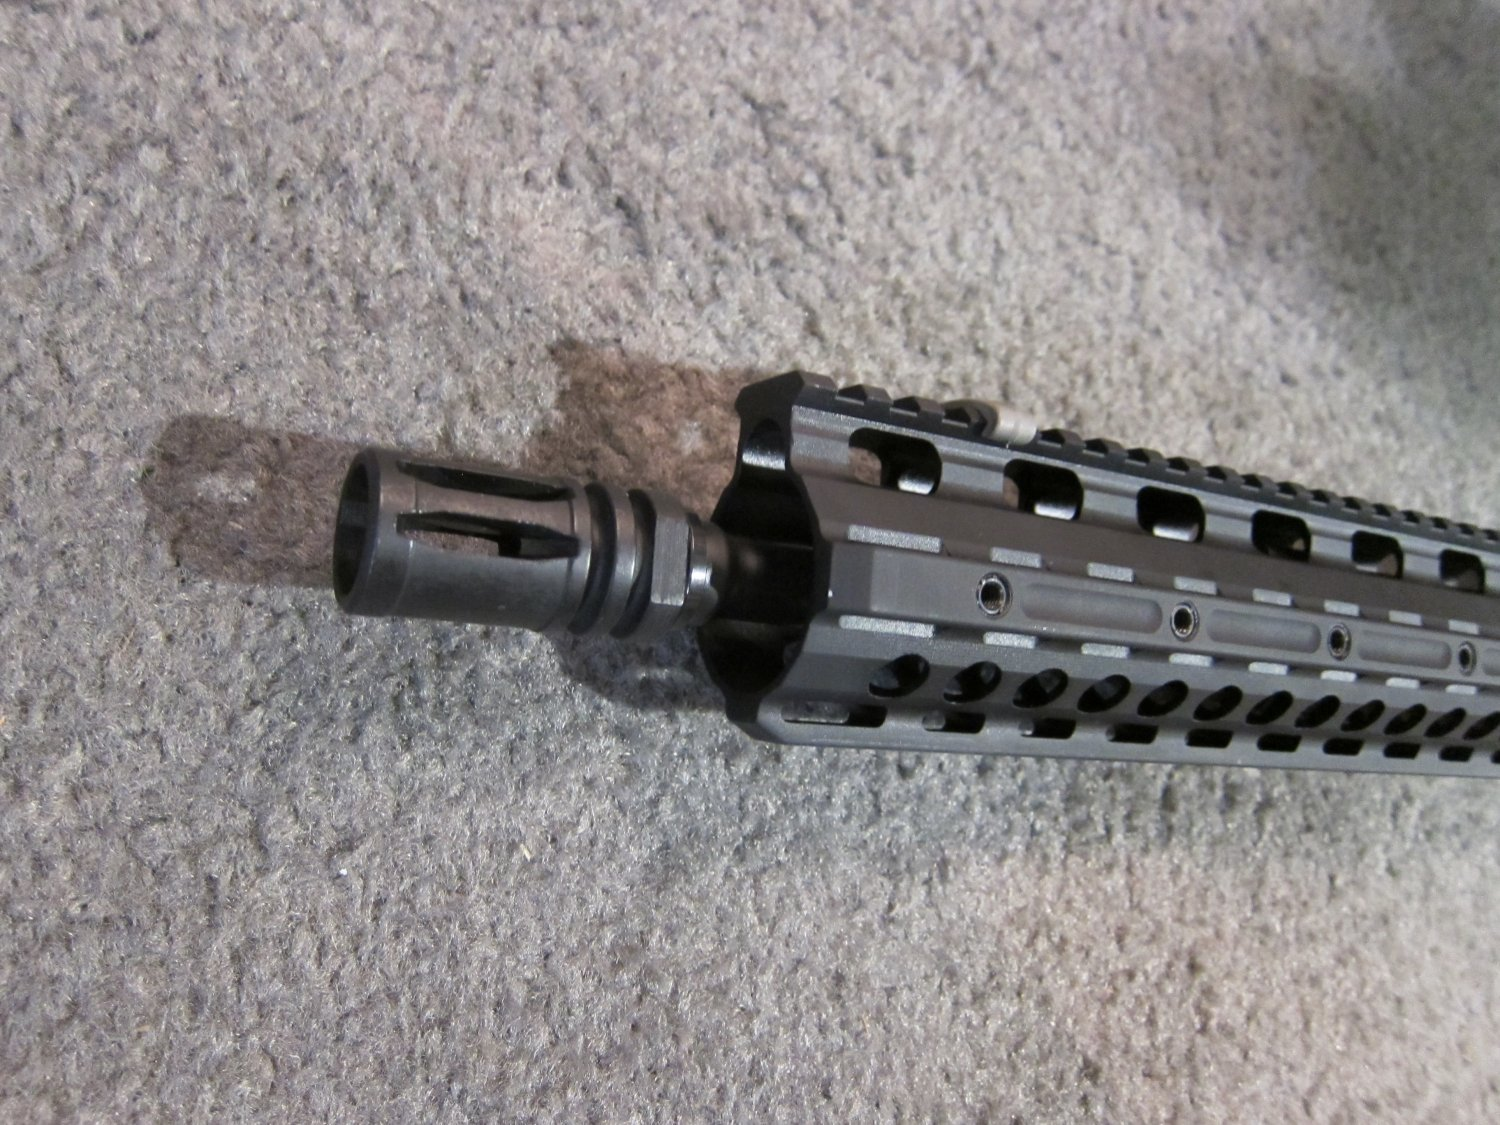 LaRue Tactical OBR 5.56 PREDATAR Series Tactical AR Carbine at SHOT Show 2011 2 <!  :en  >LaRue Tactical PredatAR Series Lightweight OBR 5.56 and OBR 7.62 Tactical AR Carbines Debut at SHOT Show 2011 (Video!)<!  :  >